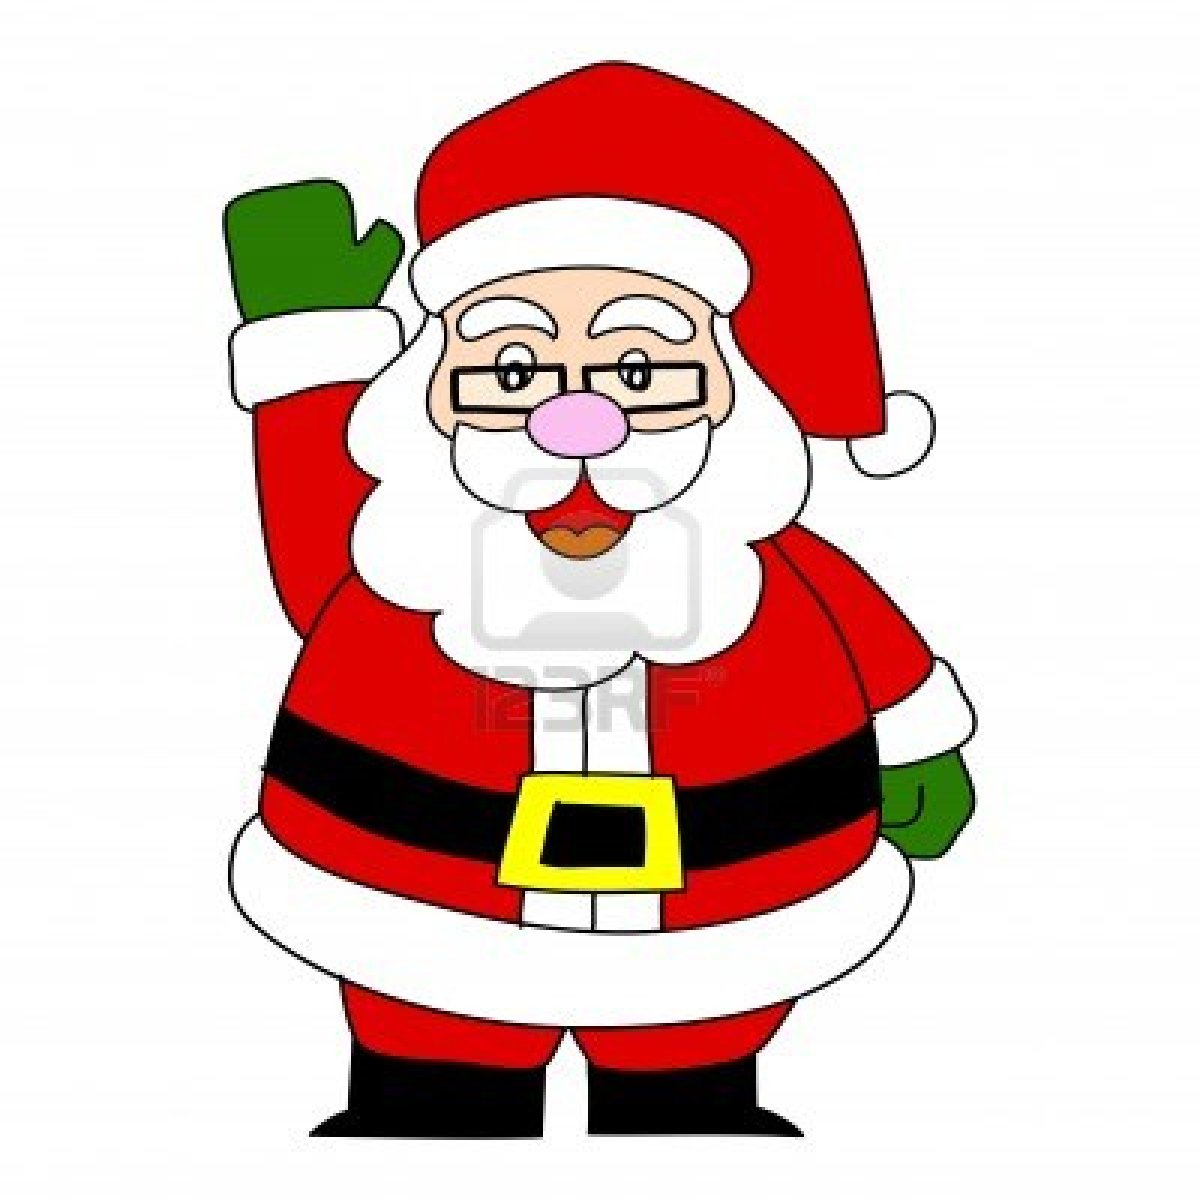 Sta clipart image royalty free download Free Santa Drawing Cliparts, Download Free Clip Art, Free ... image royalty free download